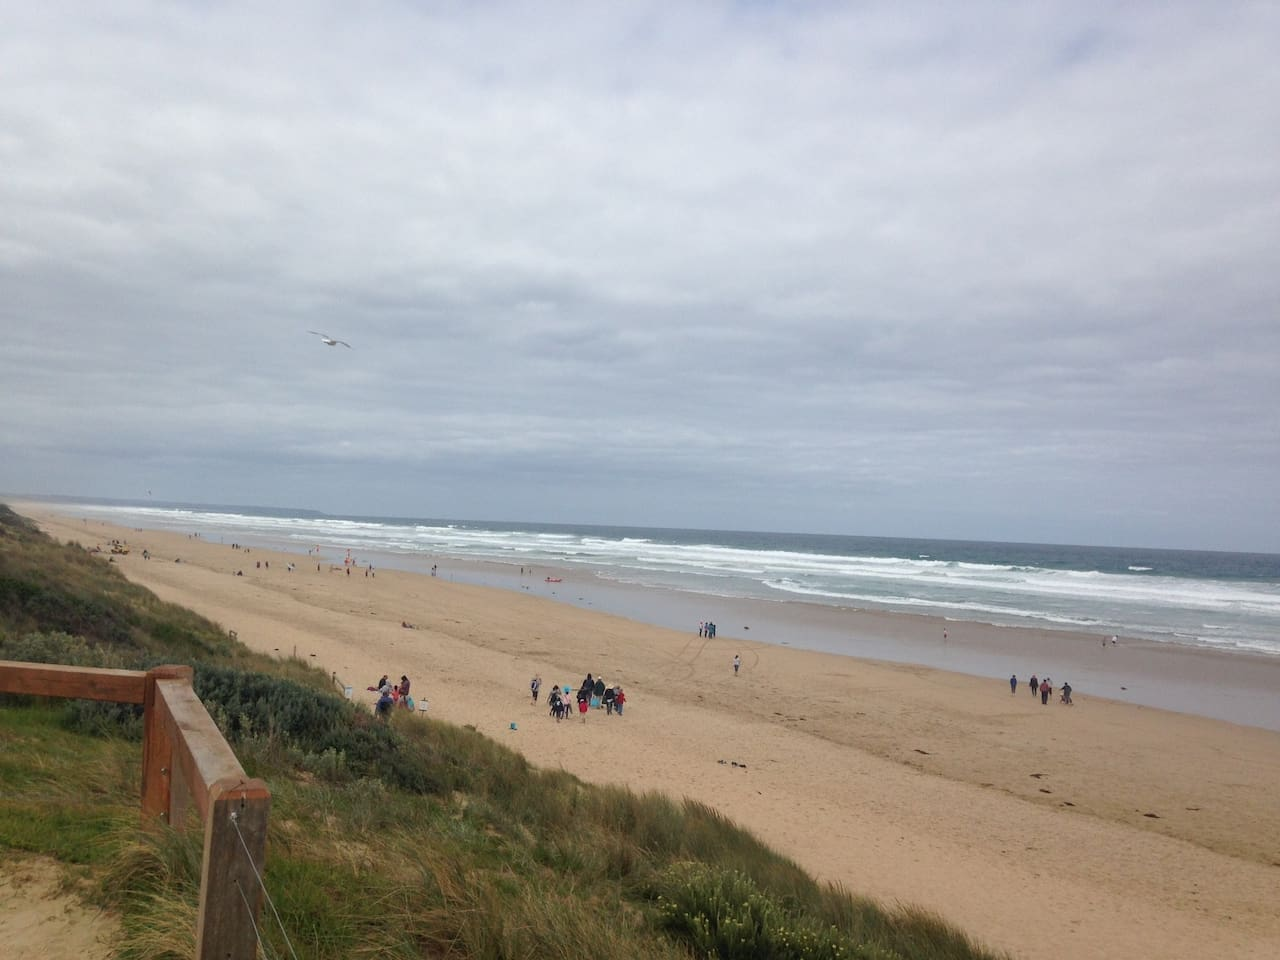 Only a 15 minute walk to this surf patrolled beach